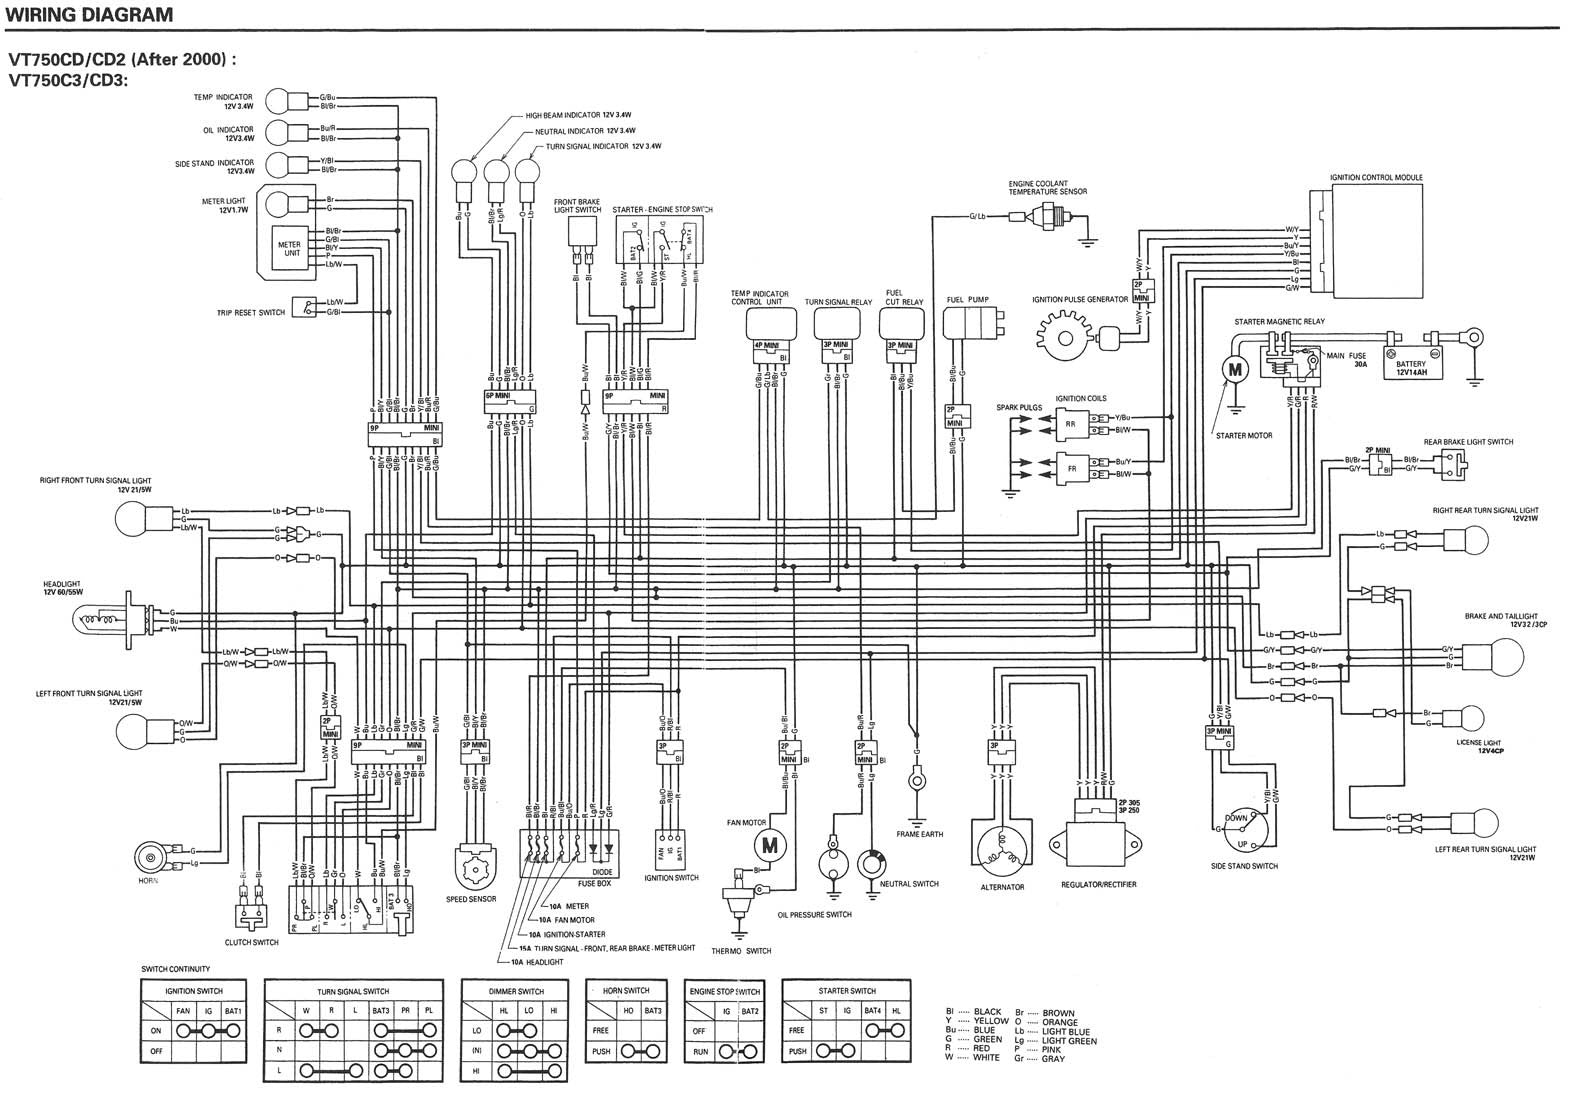 Faq Tj Brutal Customs Hp 600 Wiring Diagram Honda Vt750 Ace 2001 2003 V2